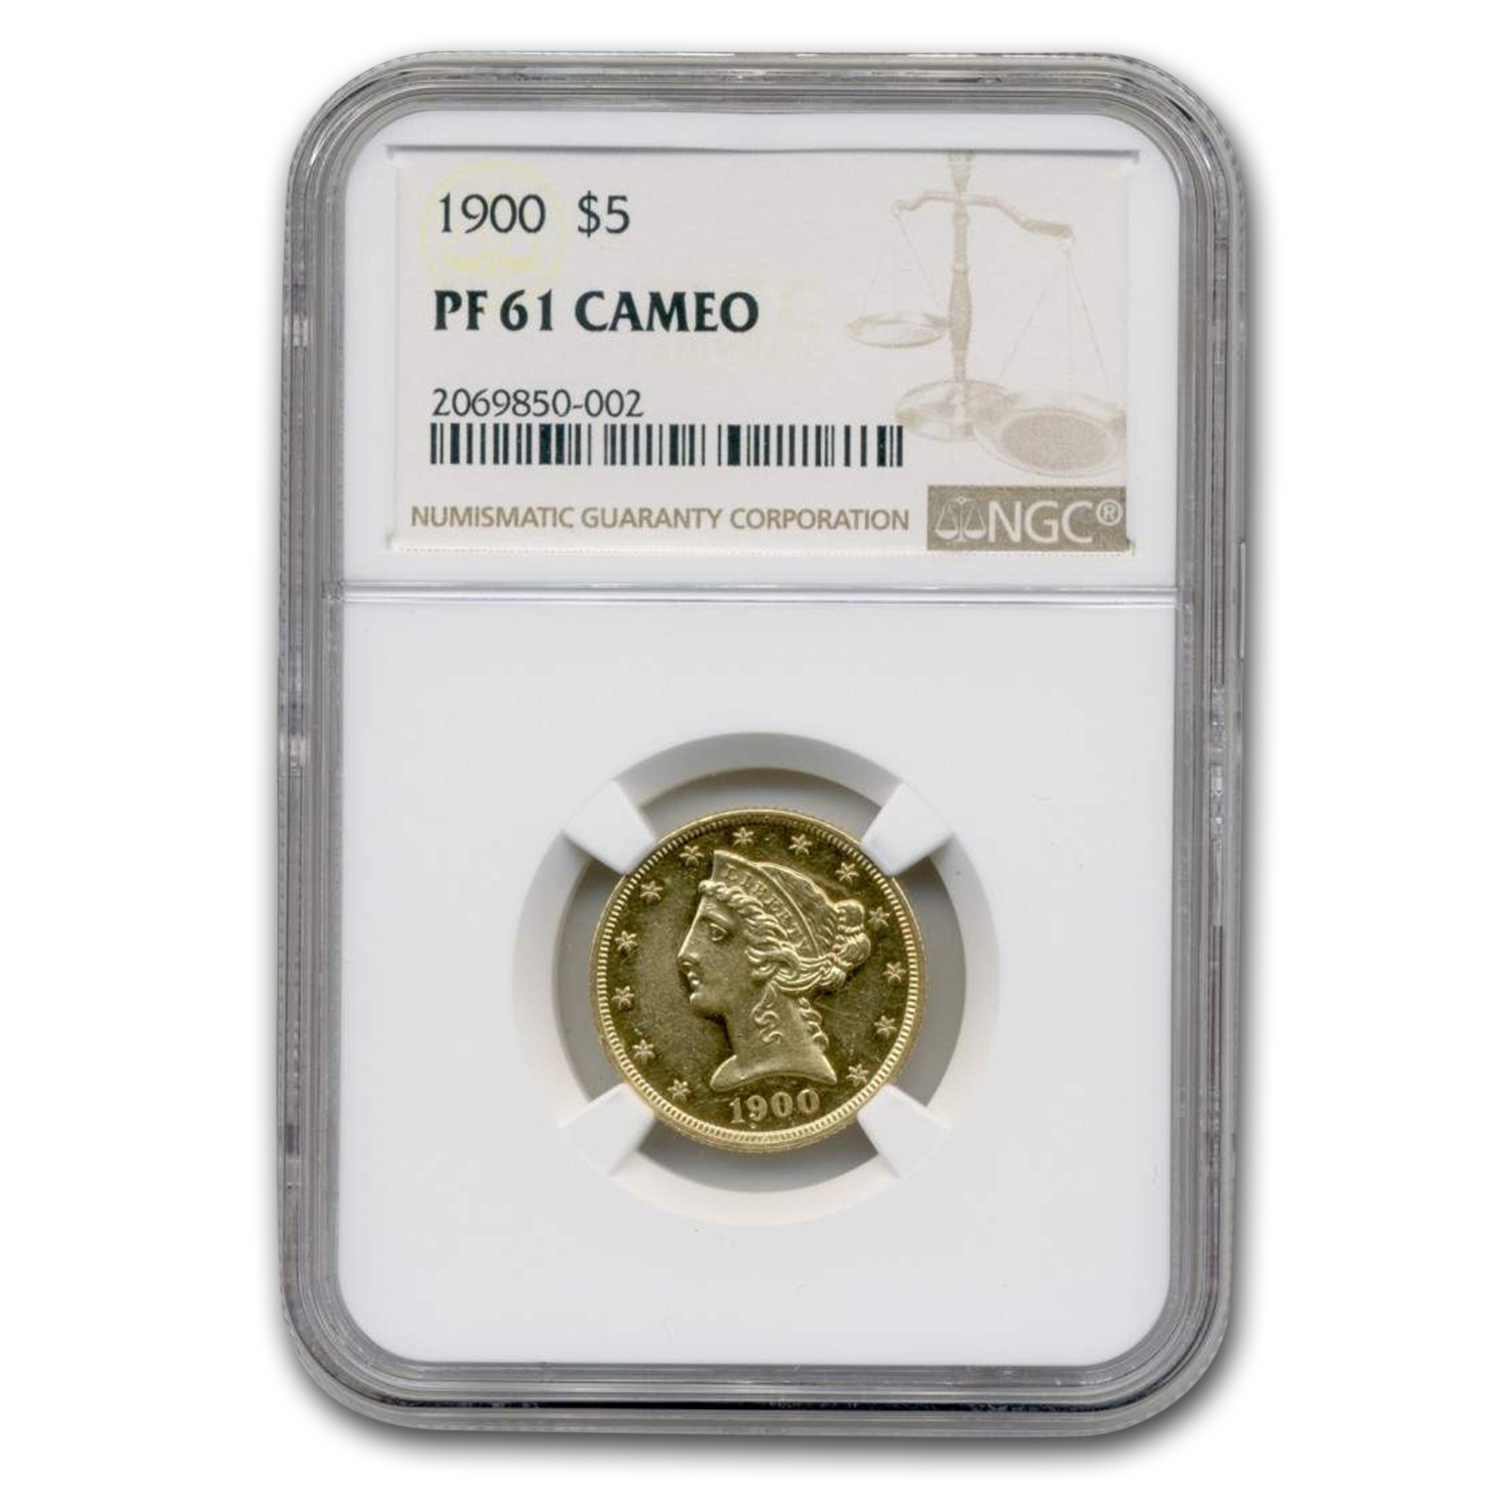 1900 $5 Liberty Gold Half Eagle PR-61 Cameo NGC